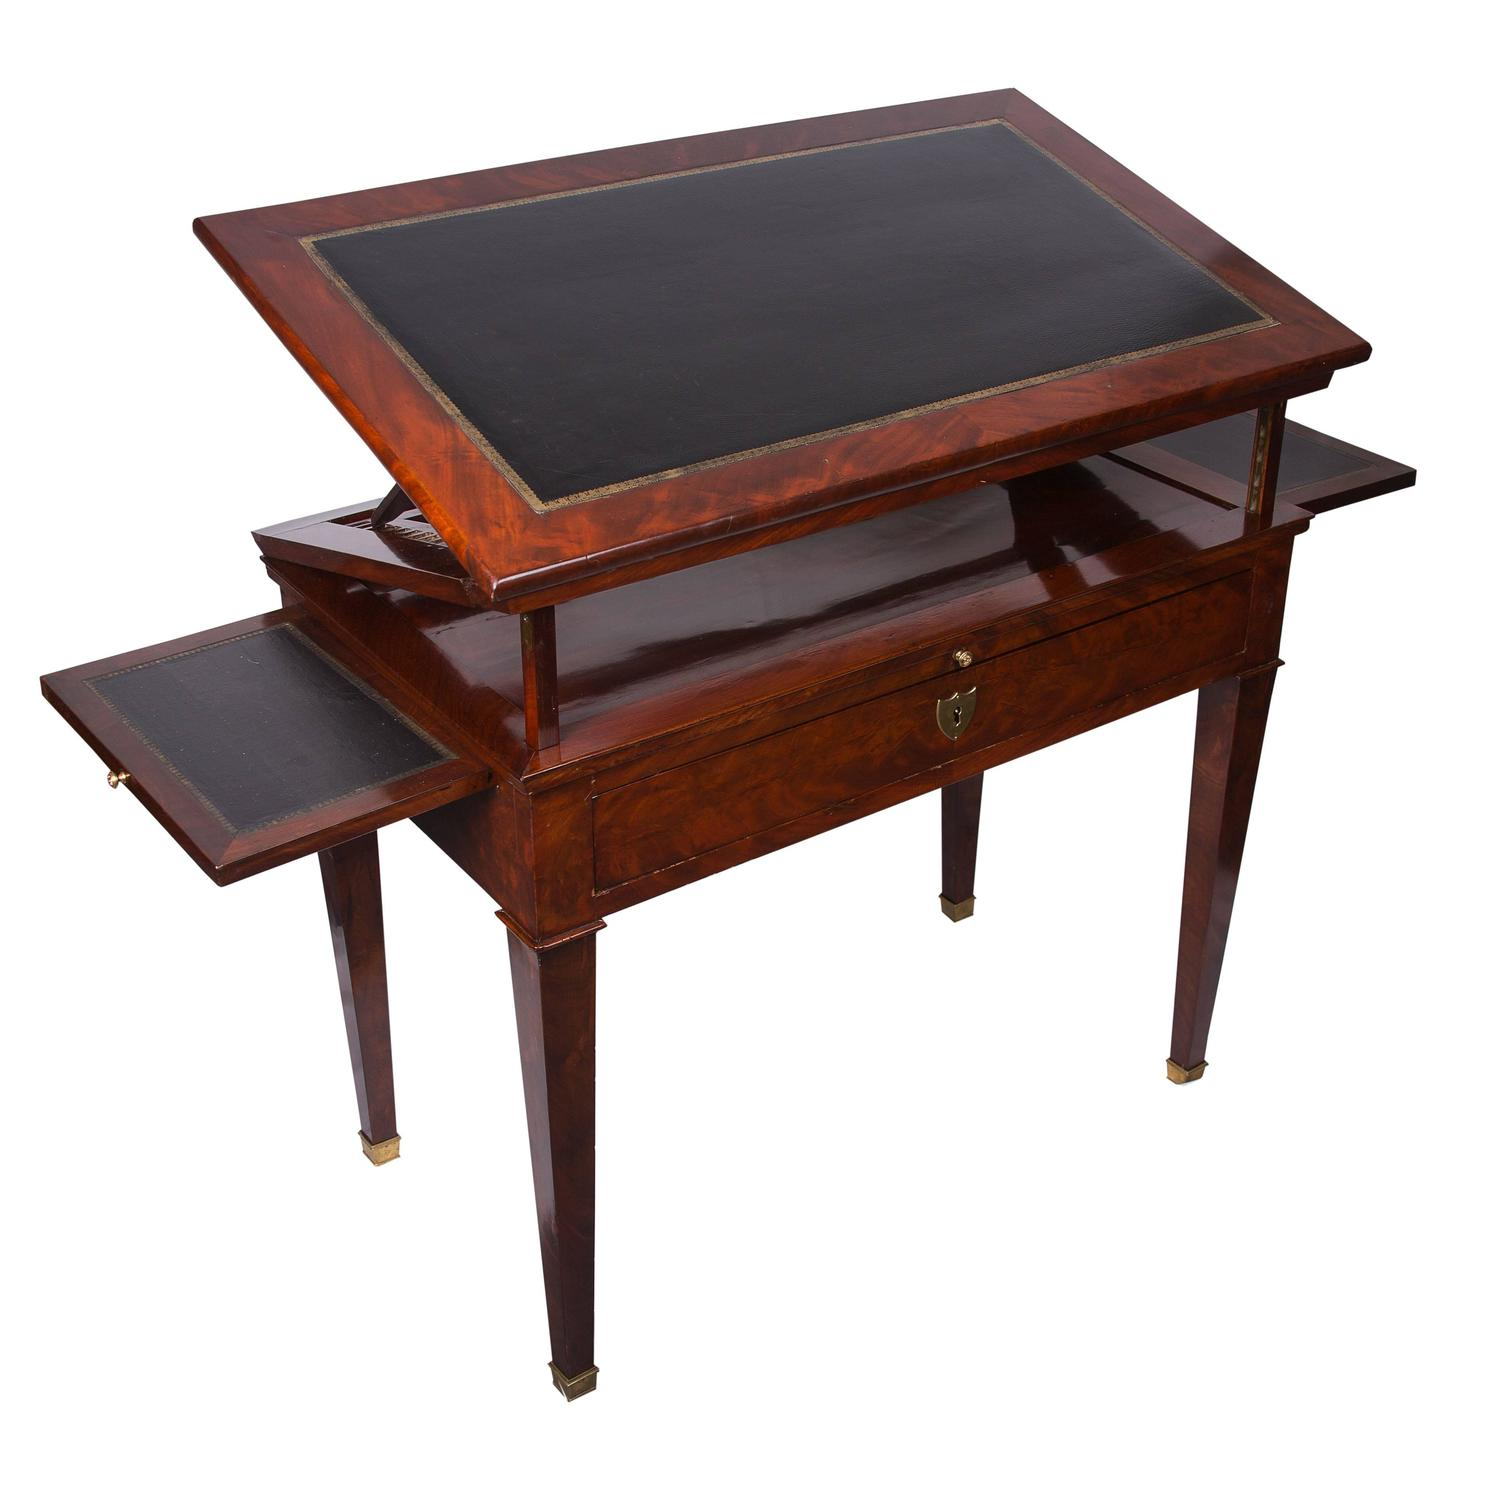 19th Century French Empire Mahogany Architect 39 S Desk For Sale At 1stdibs